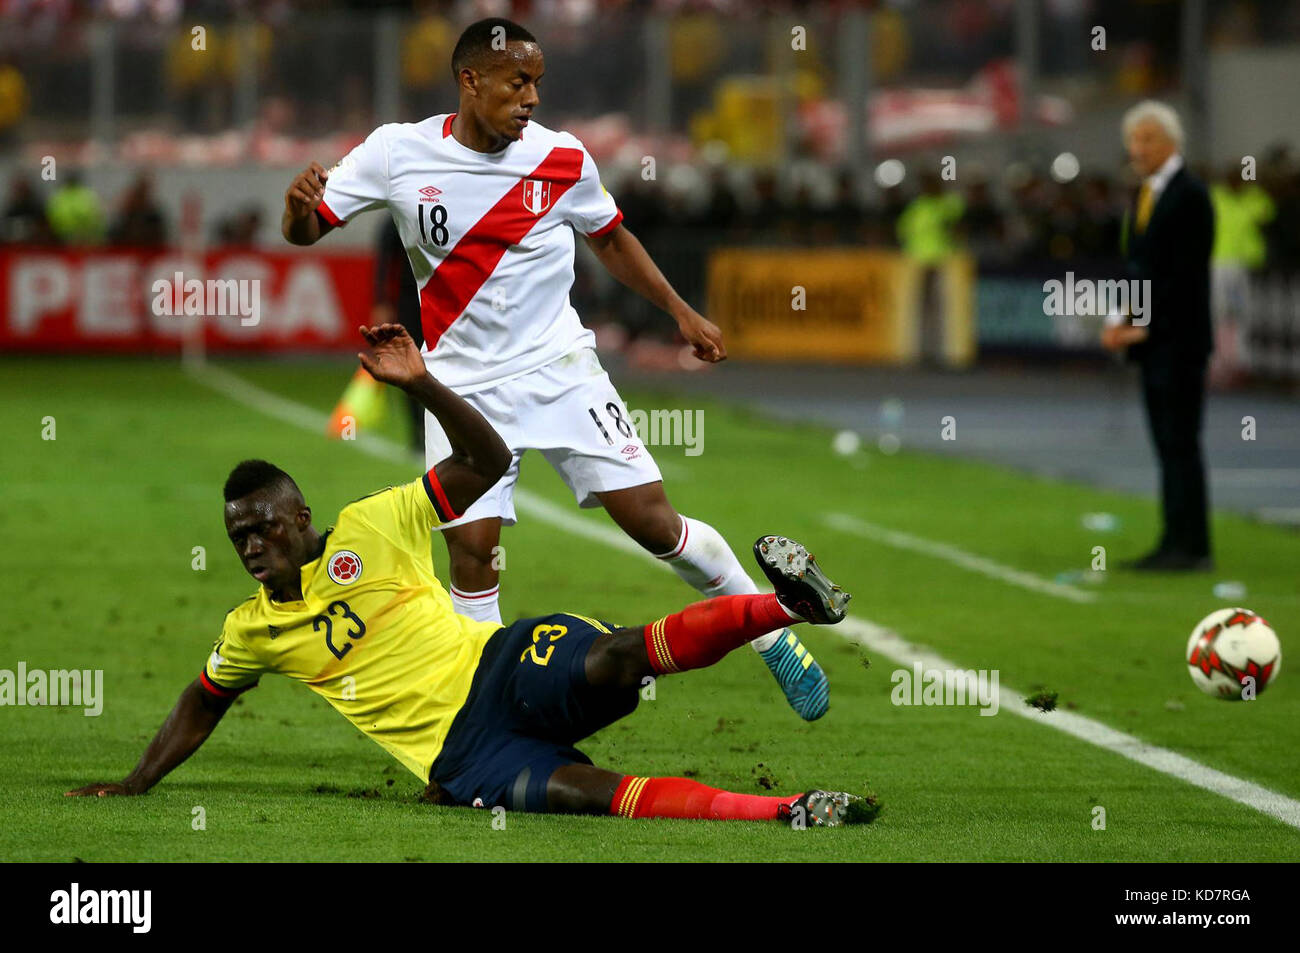 bcbacd723 Peru s Andre Carrillo (Back) vies for the ball with Colombia s Davinson  Sanchez (Front) during the Russia 2018 FIFA World Cup qualifier match